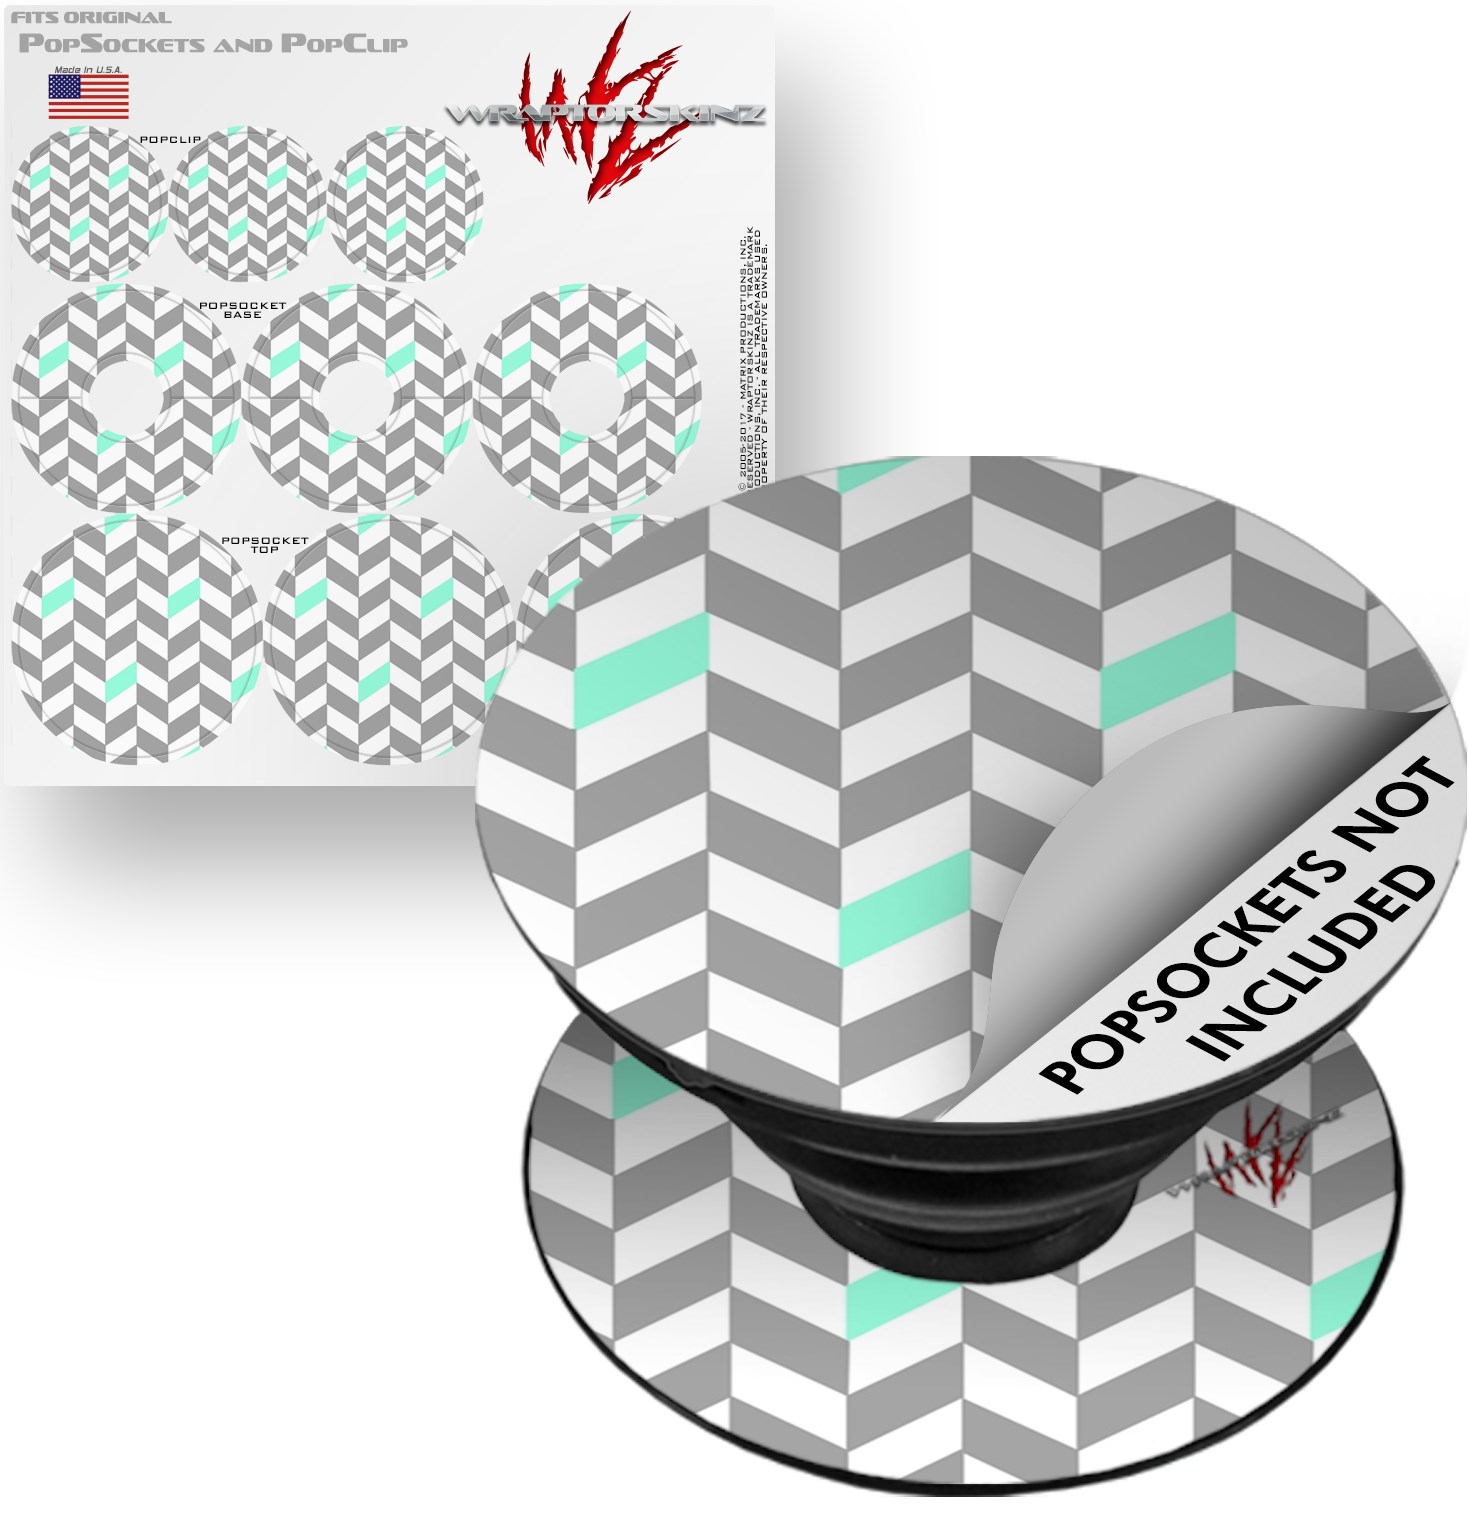 Decal Style Vinyl Skin Wrap 3 Pack for PopSockets Chevrons Gray And Seafoam (POPSOCKET NOT INCLUDED) by WraptorSkinz